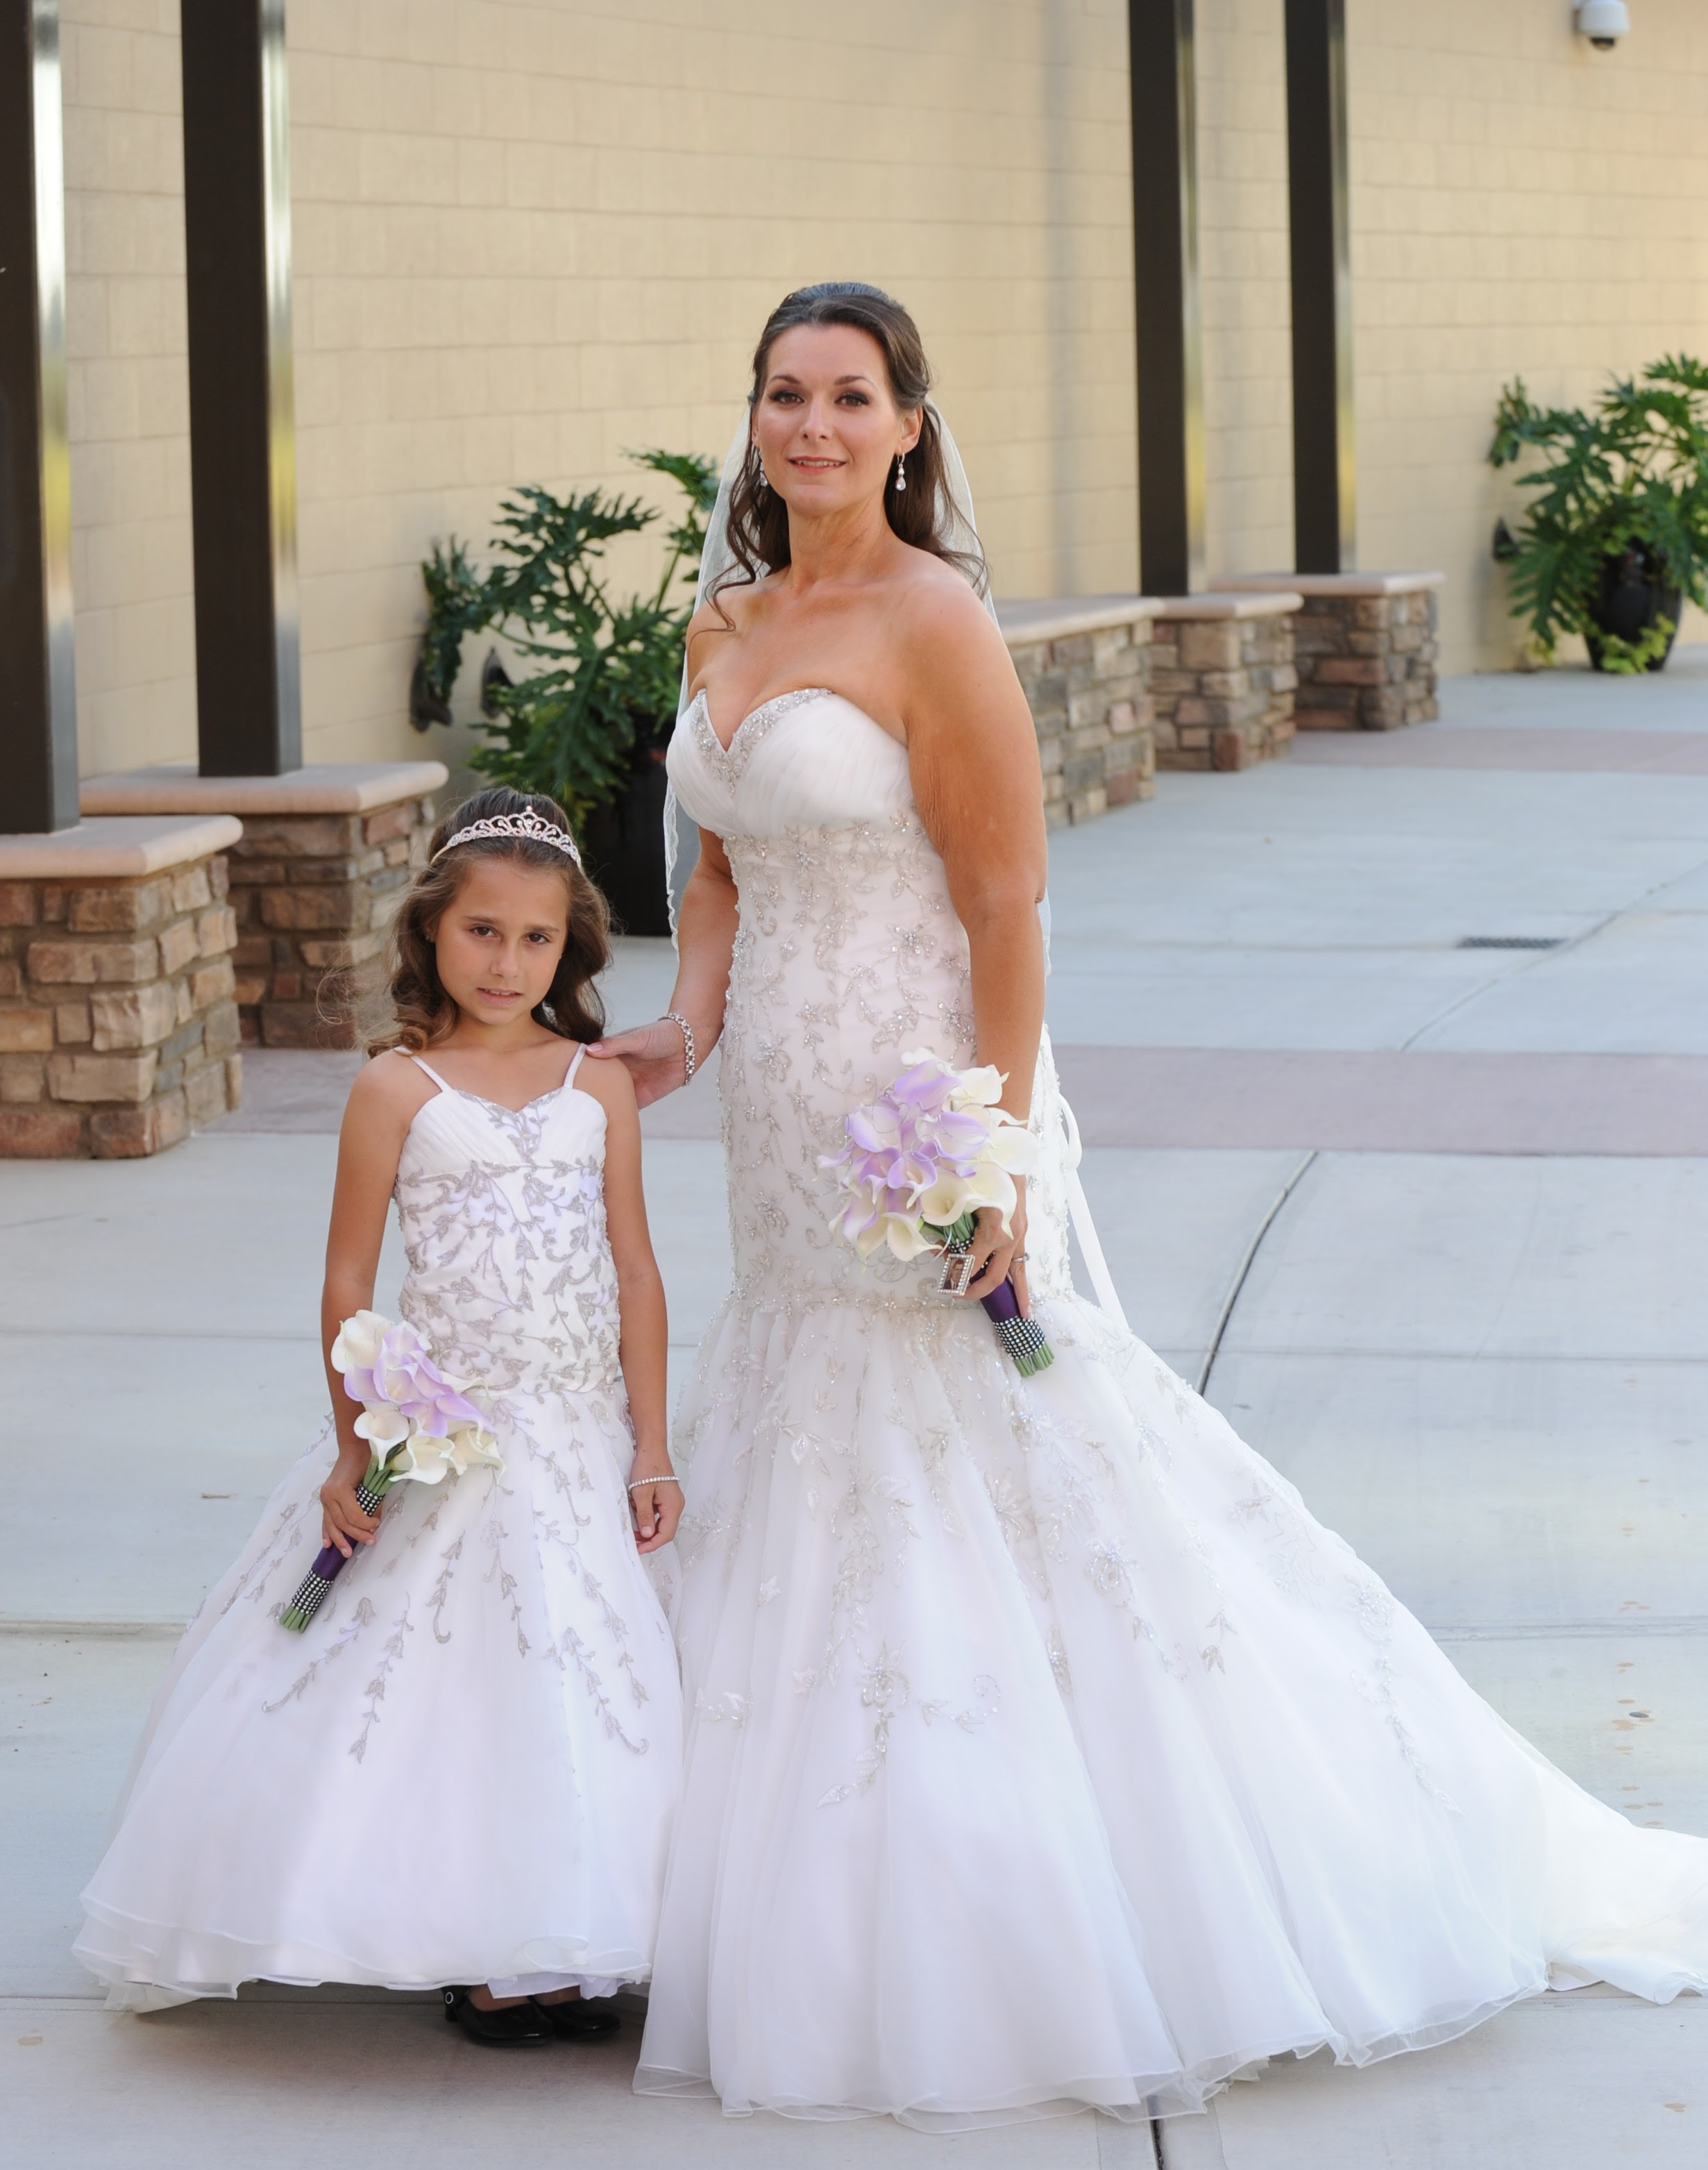 flower girl dresses made to match the brides wedding dress